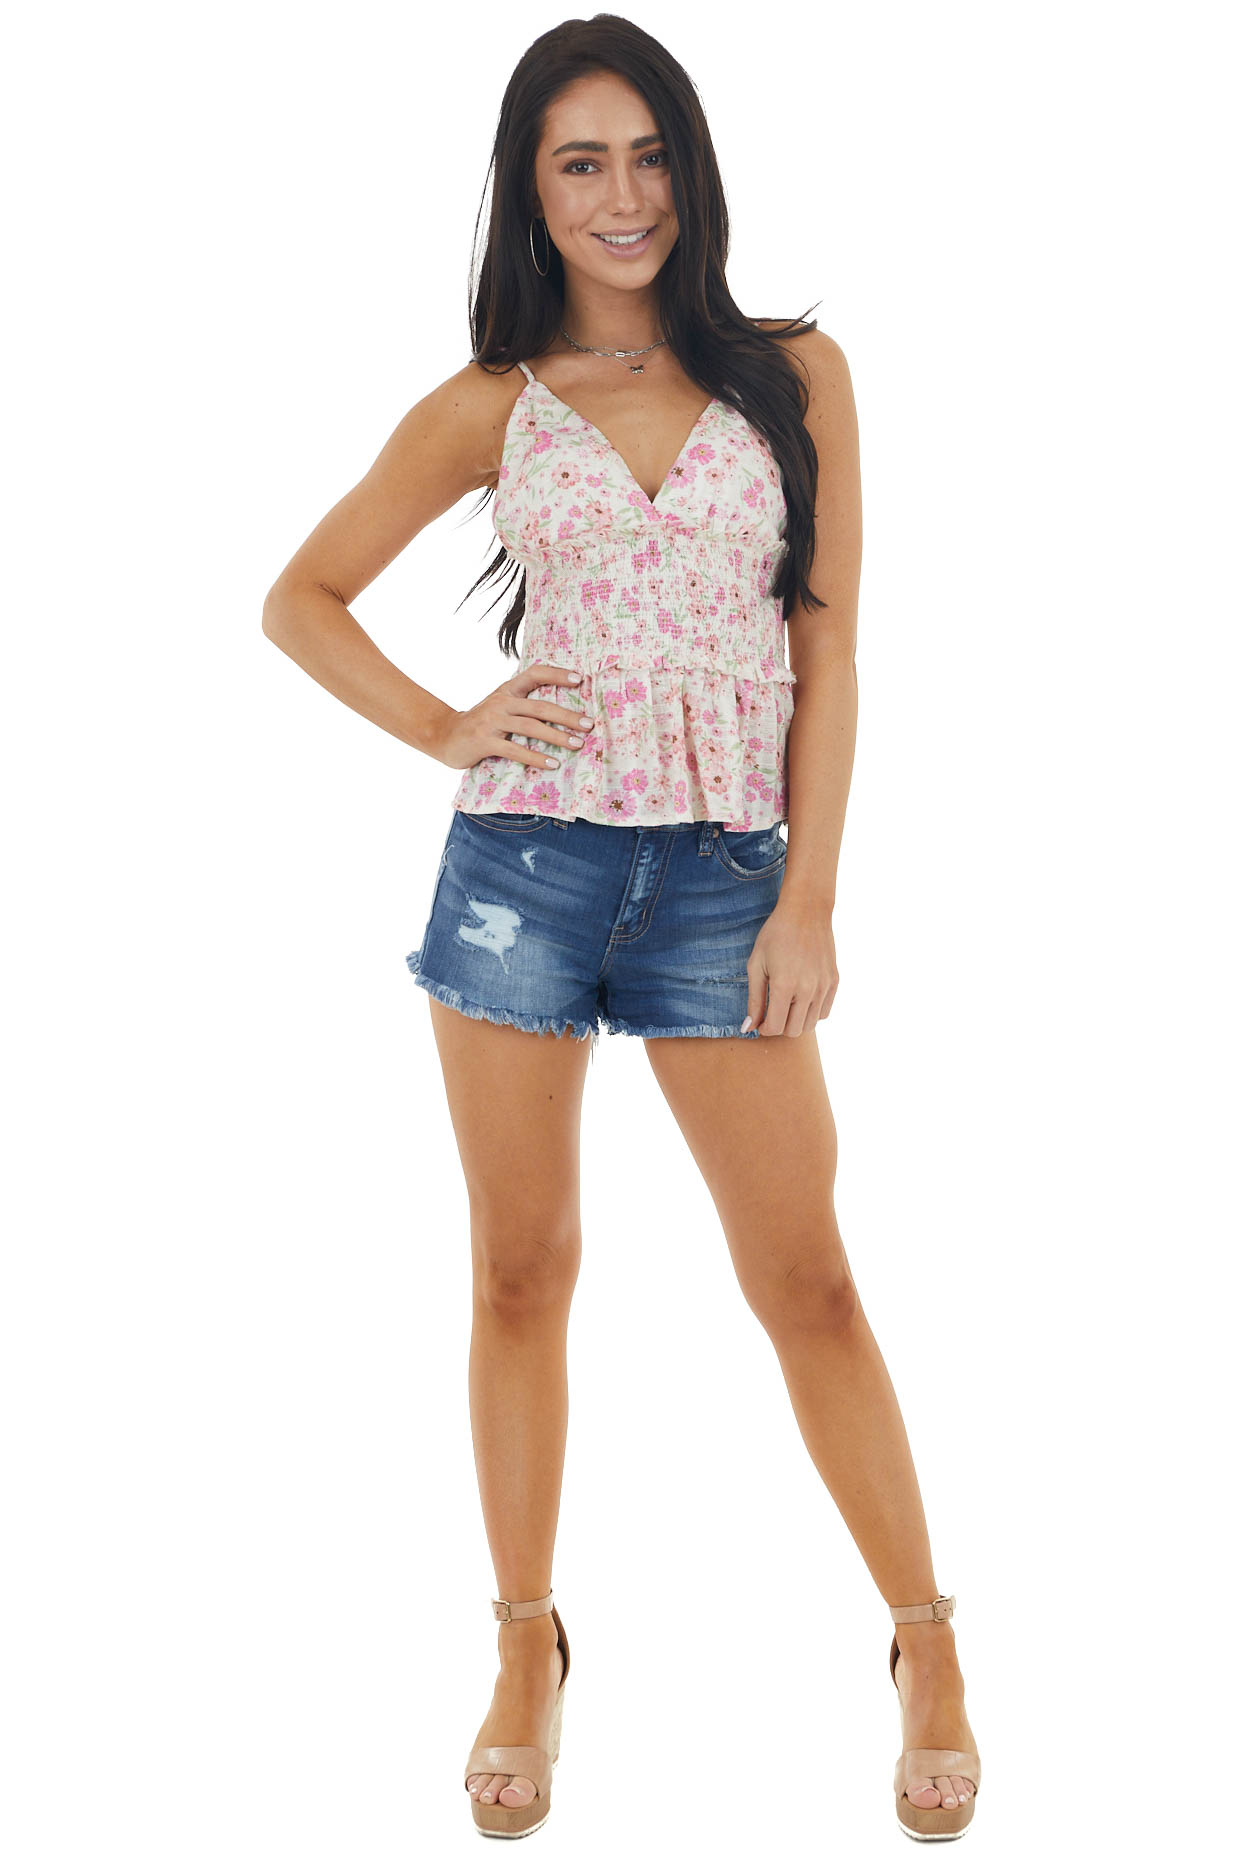 Fuchsia and Cream Floral Print Sleeveless Peplum Tank Top